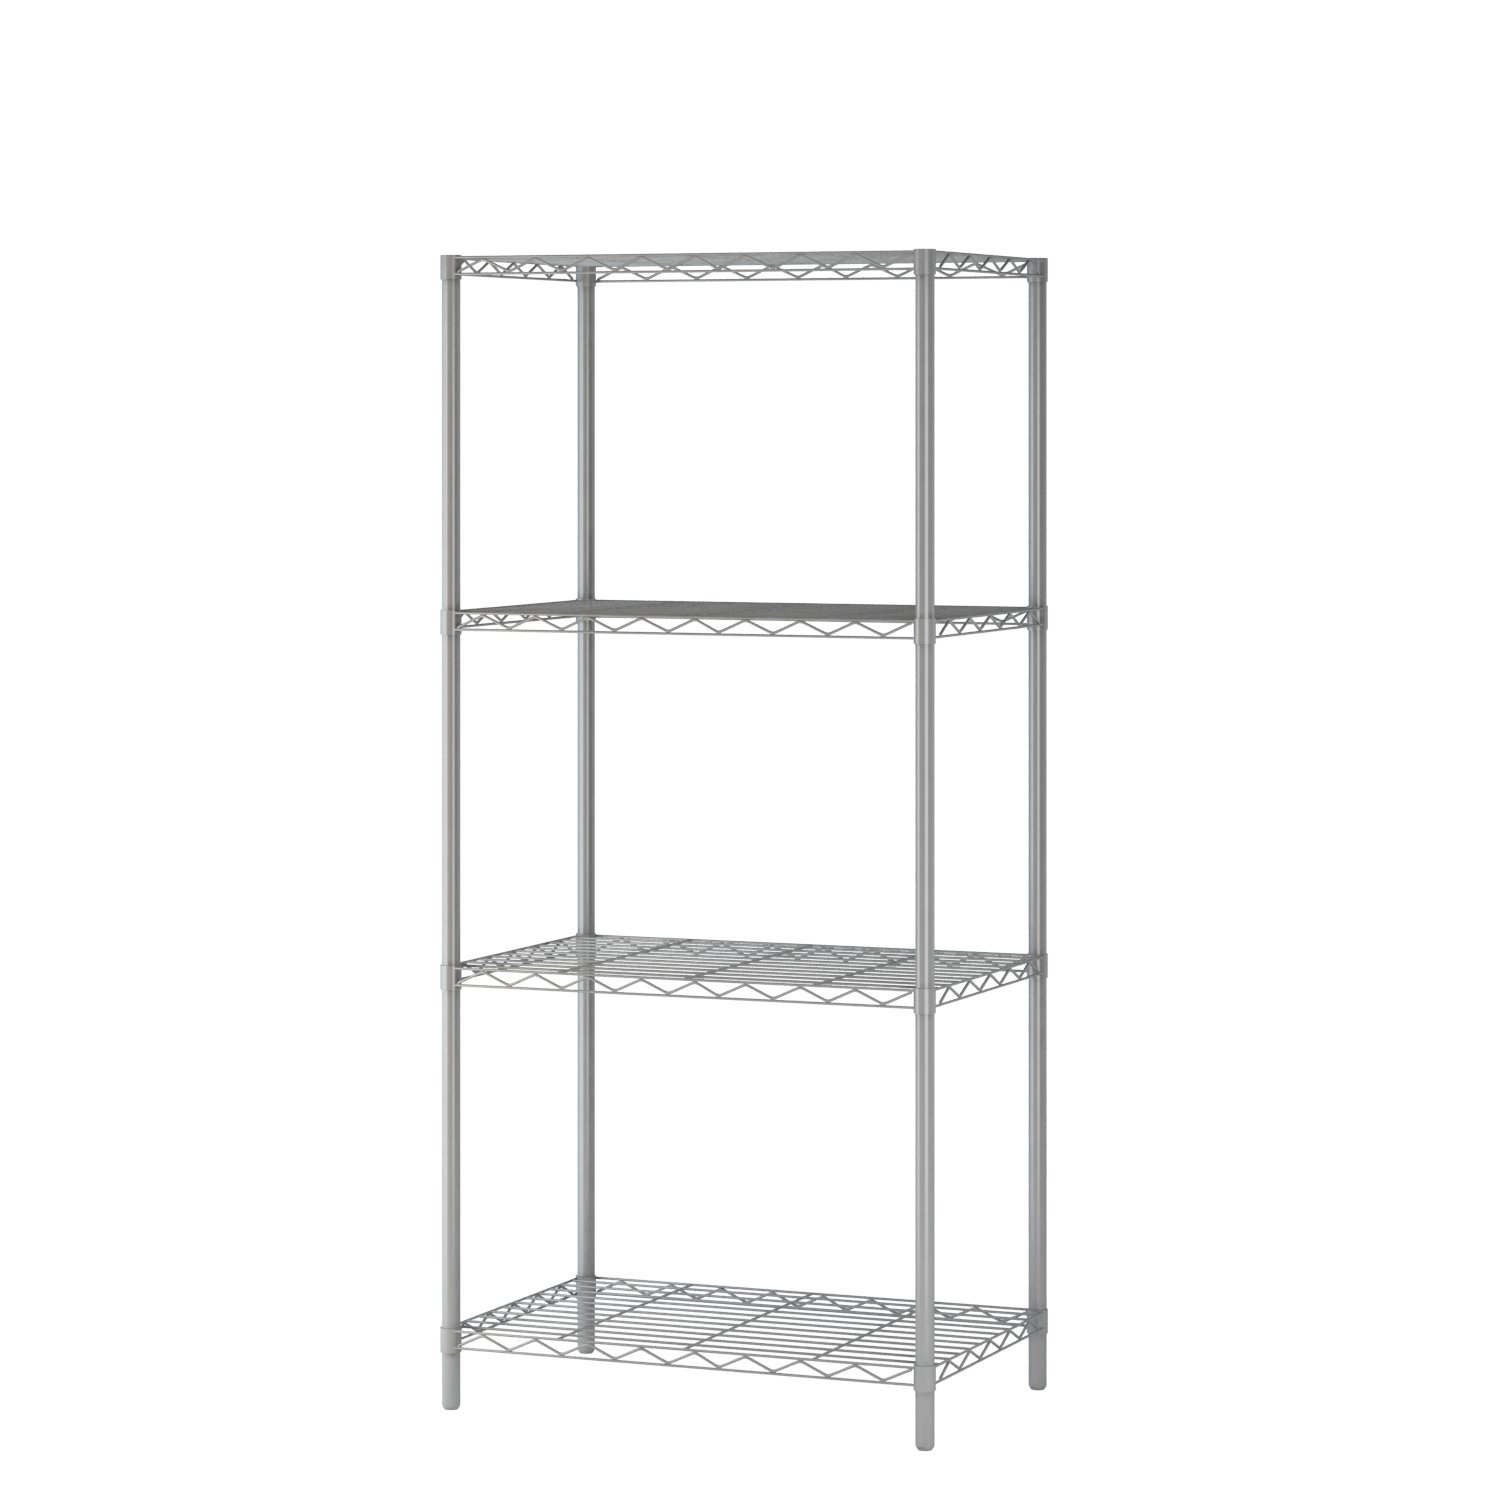 Homebi 4-tier Wire Shelving 4 Shelves Unit Metal Storage Rack Durable  Organizer Perfect For Pantry Closet Kitchen Laundry Organization In